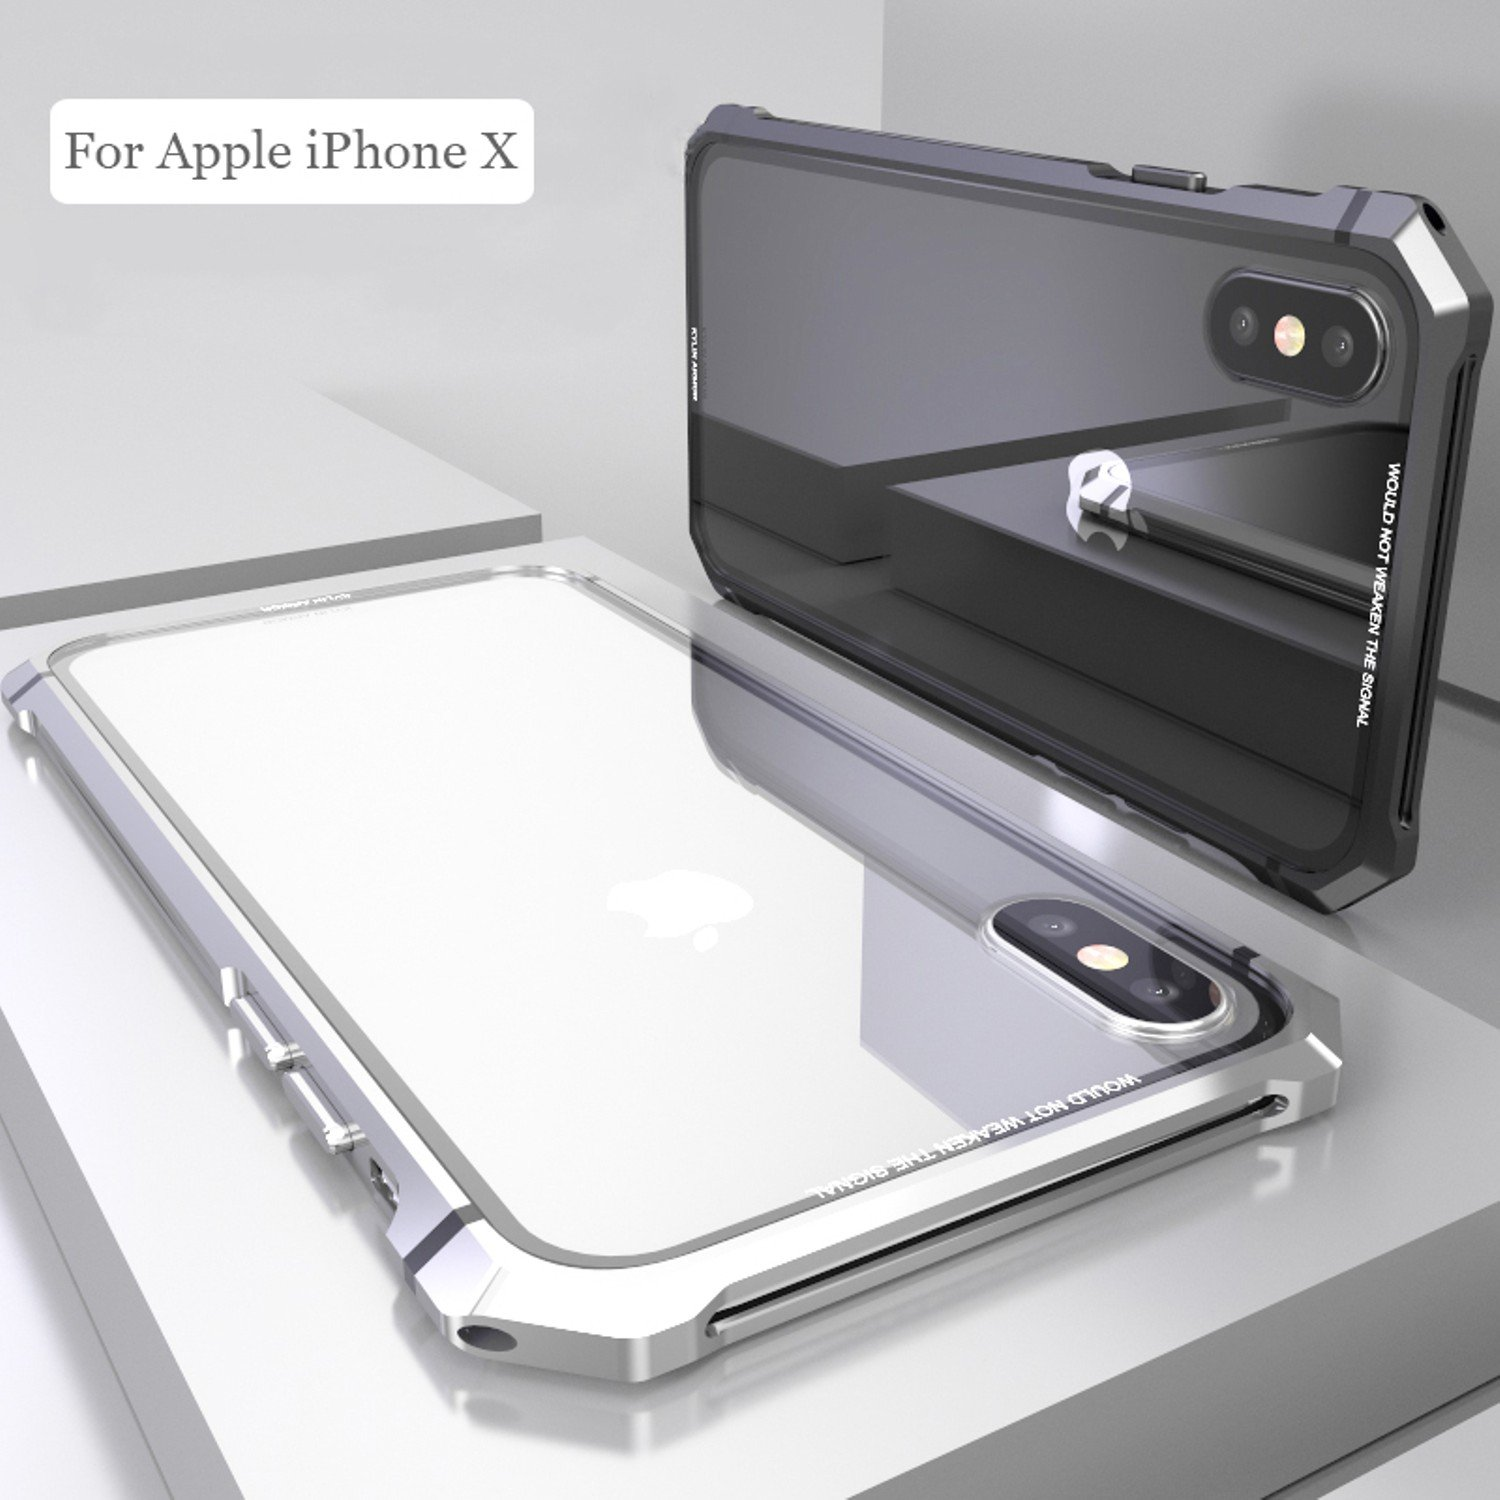 Amazon.com: Carcasa para iPhone X de color negro con ...